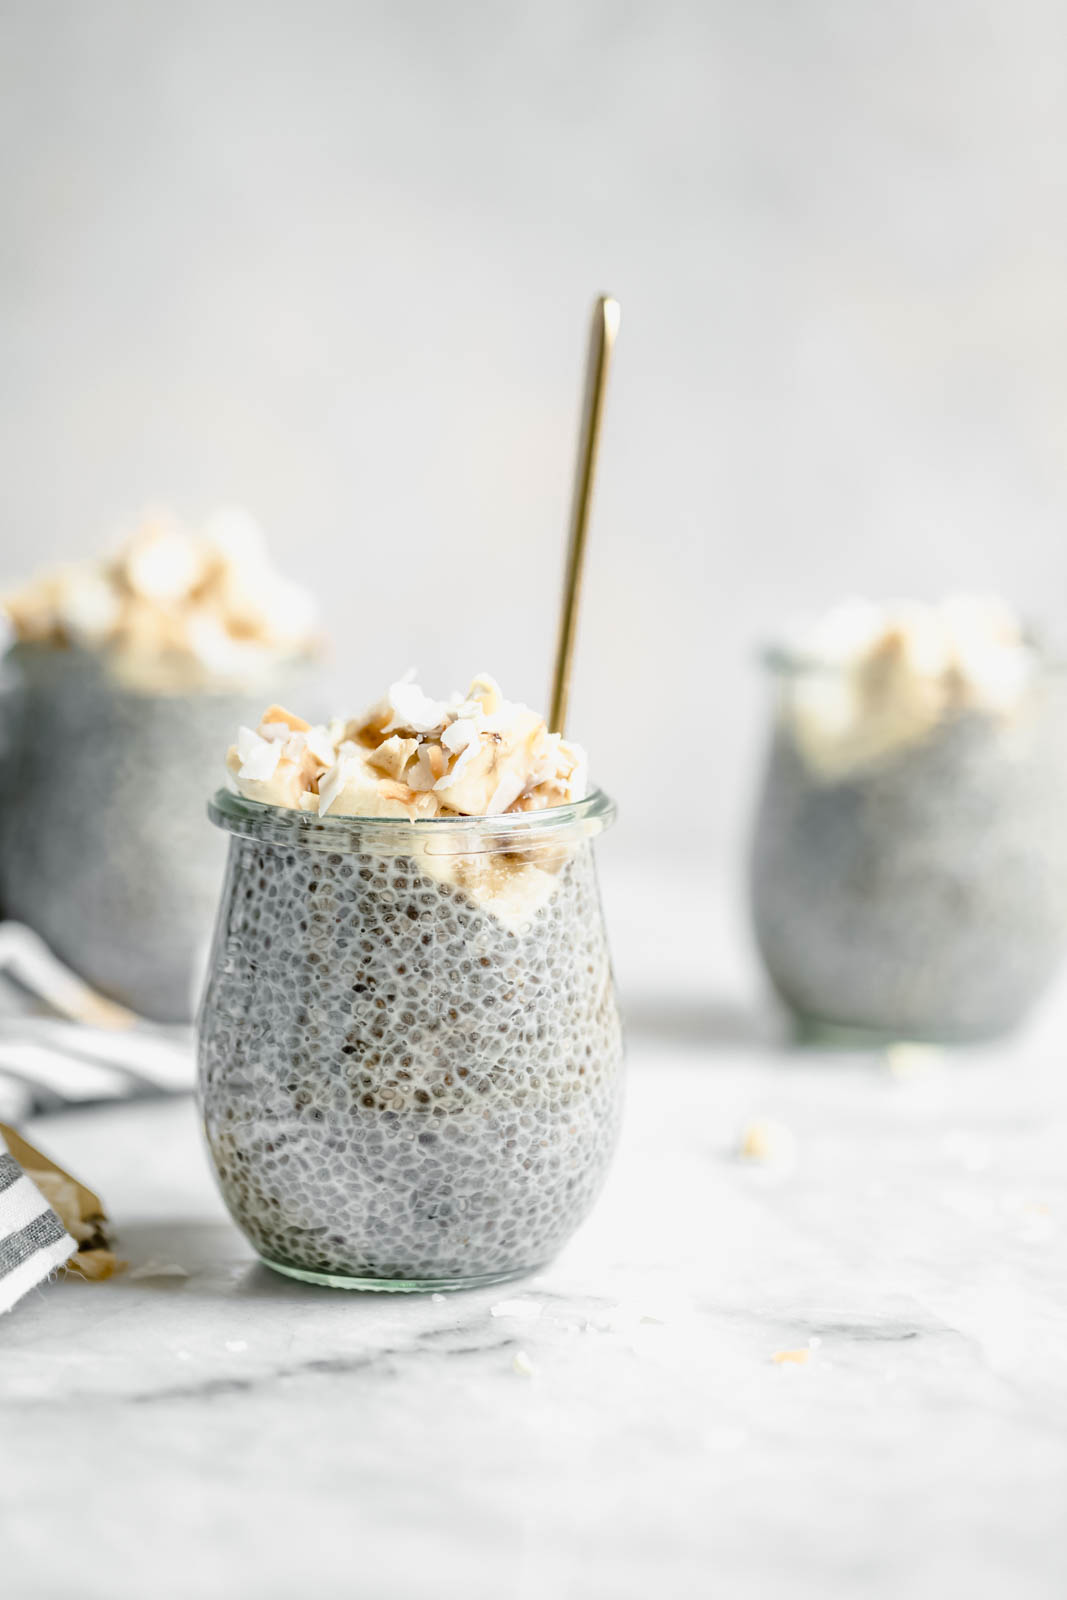 Creamy coconut chia pudding with spoon